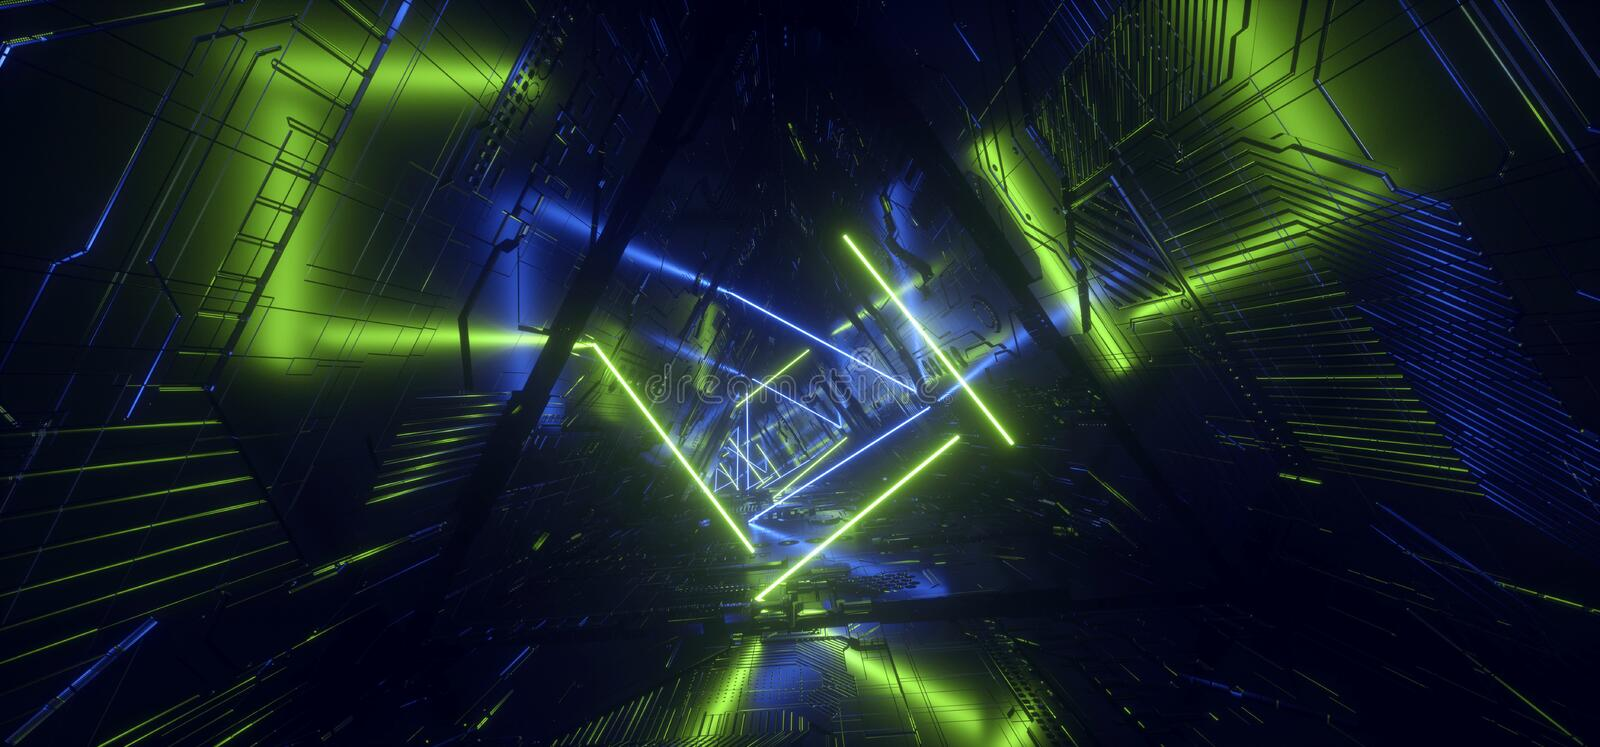 Futuristic Neon Light Blue Green Hyper Pentagonal Triangle Detailed Sci Fi Alien Spaceship Reflective Metal Corridor Tunnel Gate. Empty Glowing Background stock illustration